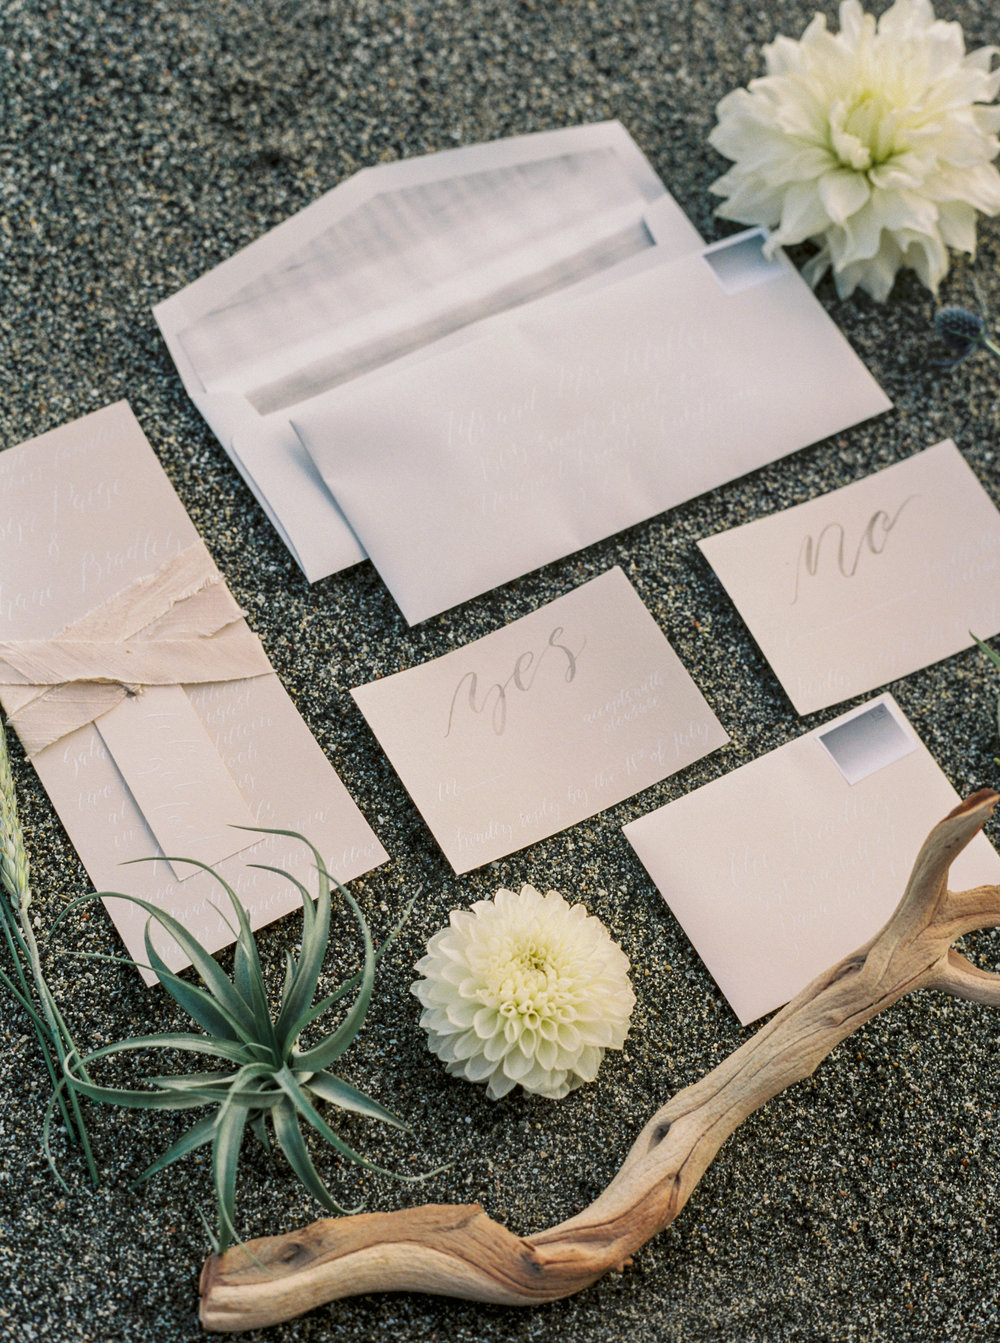 californiaweddingcalligrapher